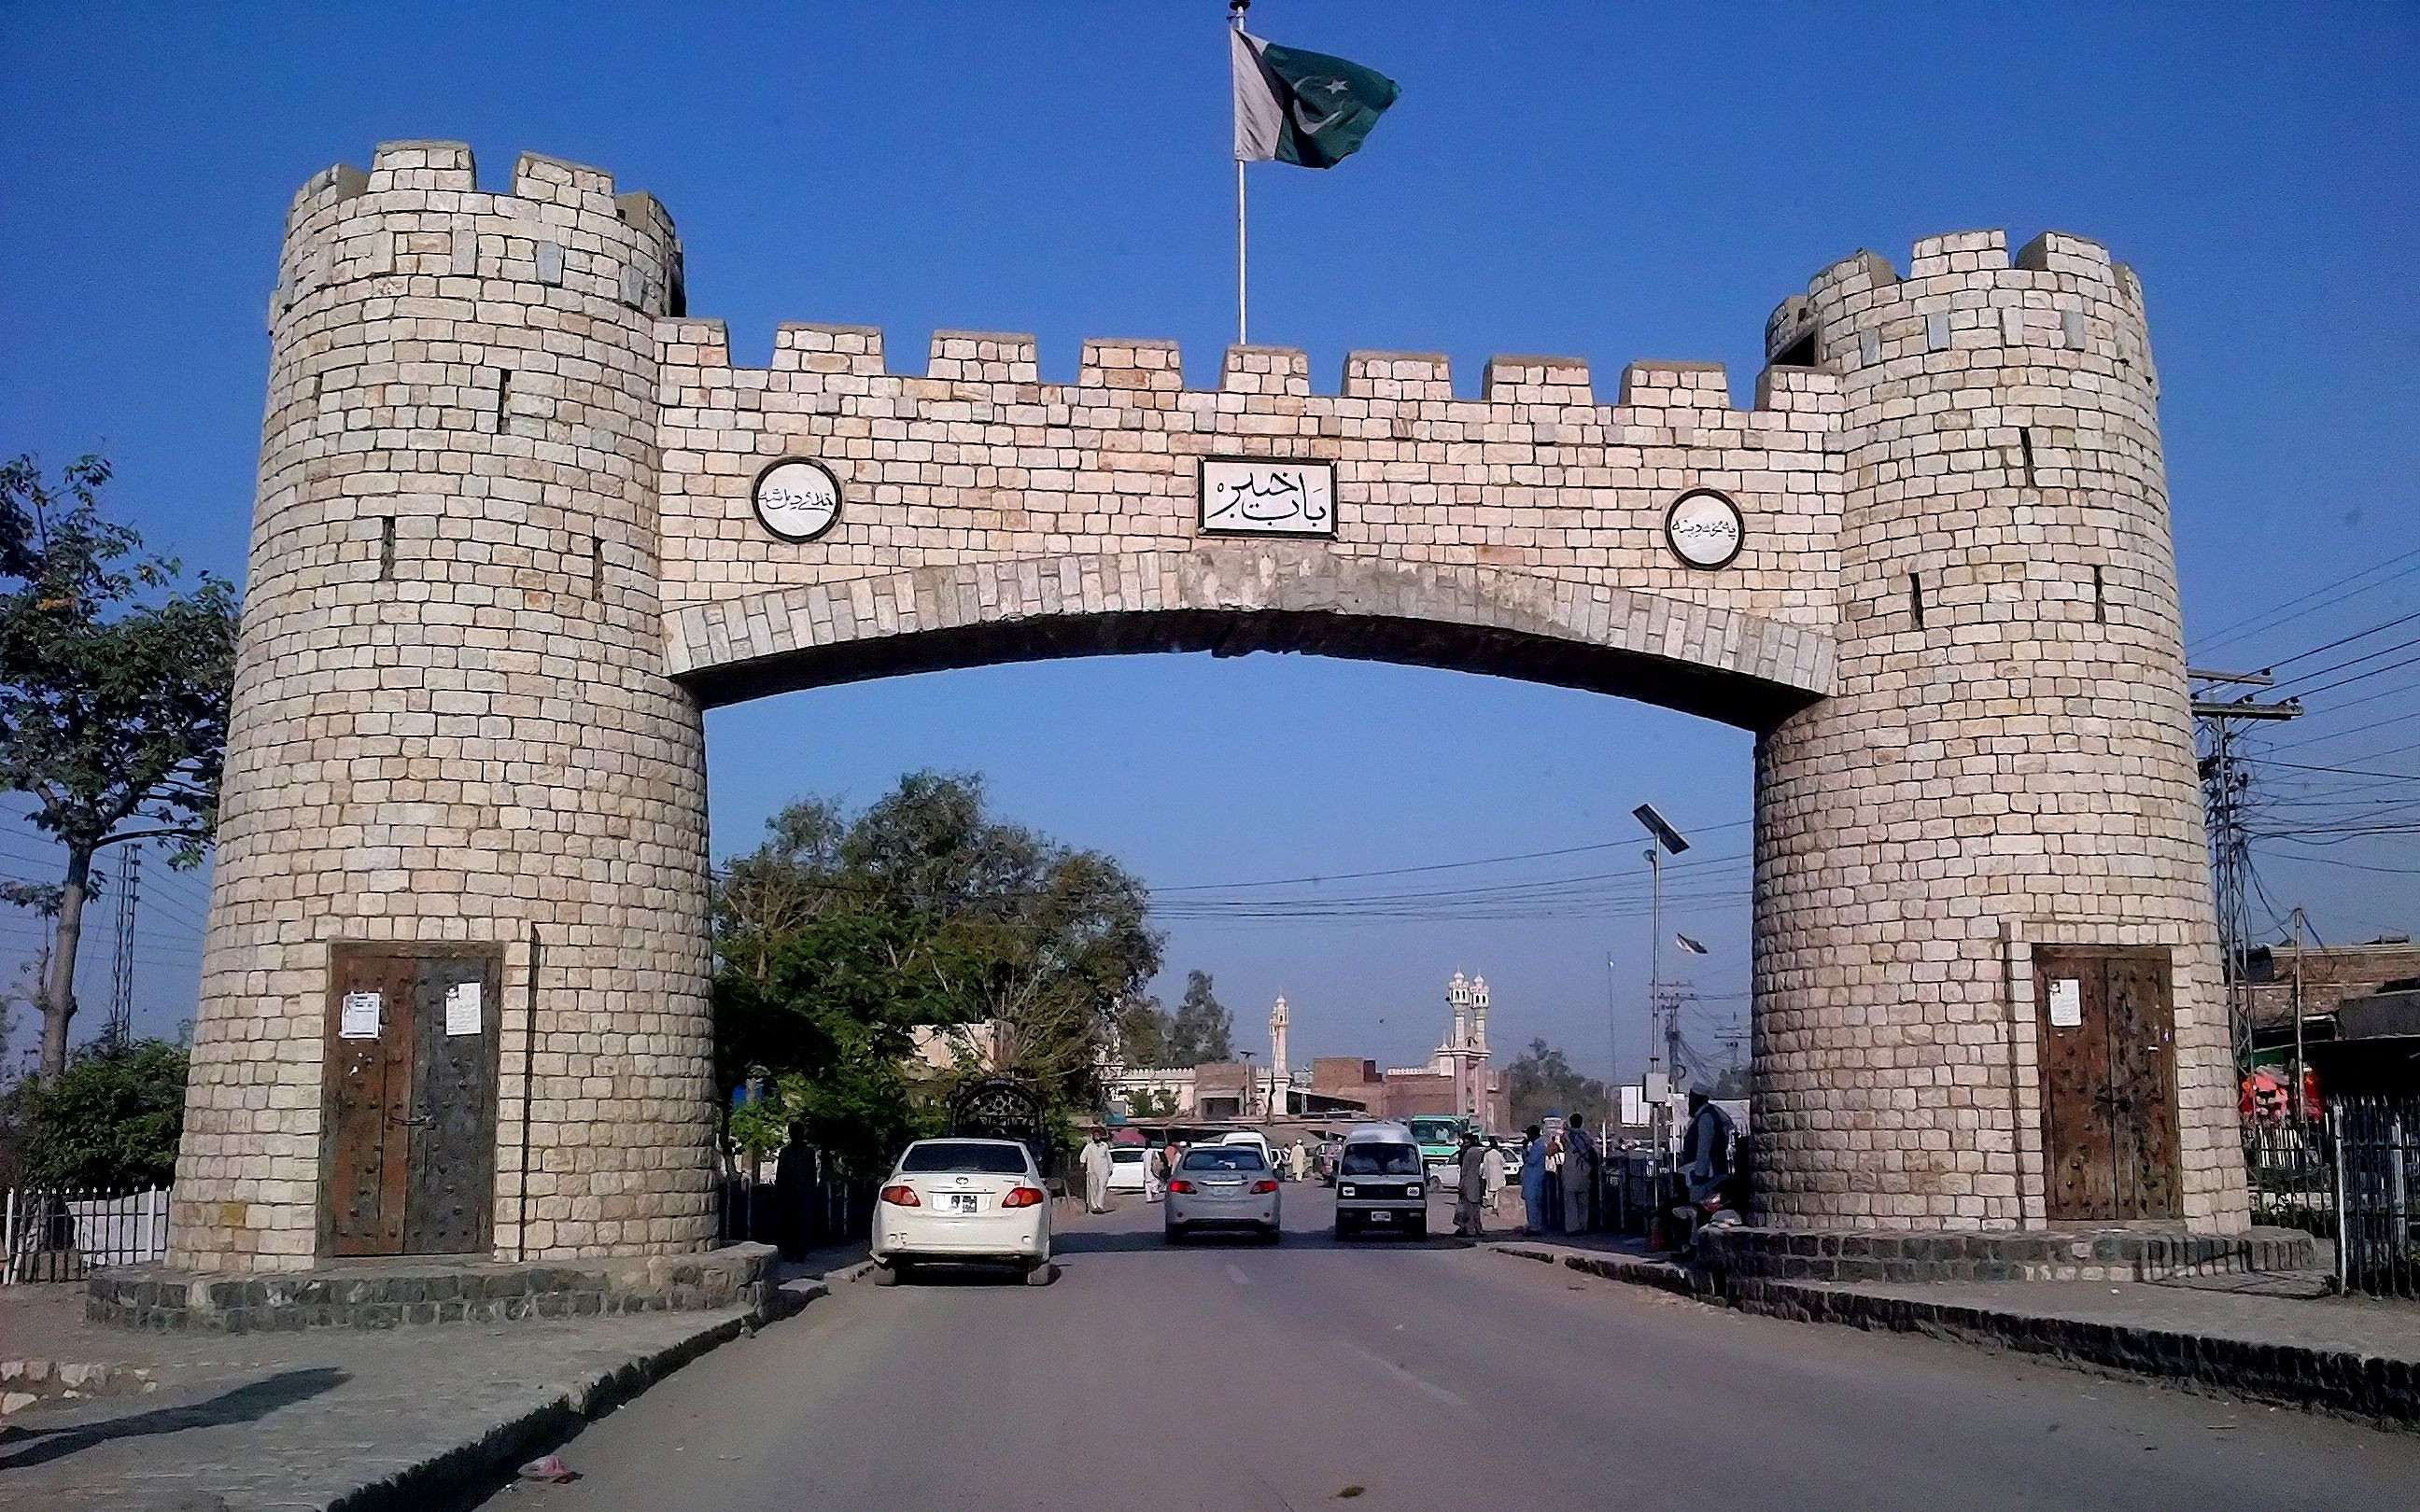 The iconic symbol for Khyber Pass, Baab e Khyber snapped